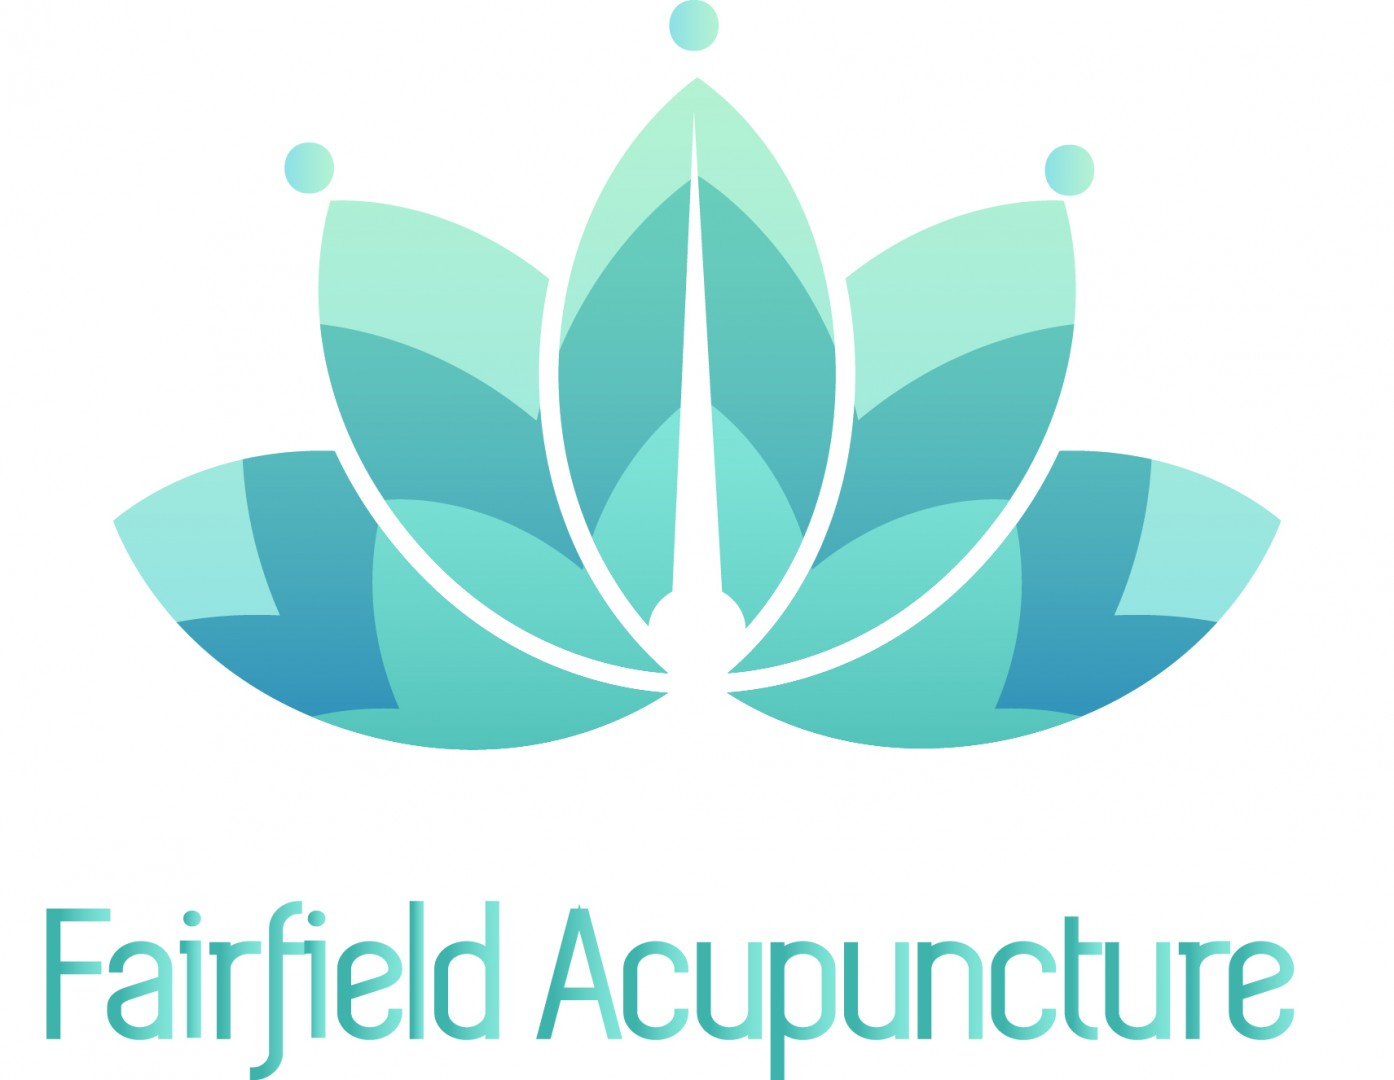 Conditions We Treat - Fairfield Acupuncture in Carroll, Ohio